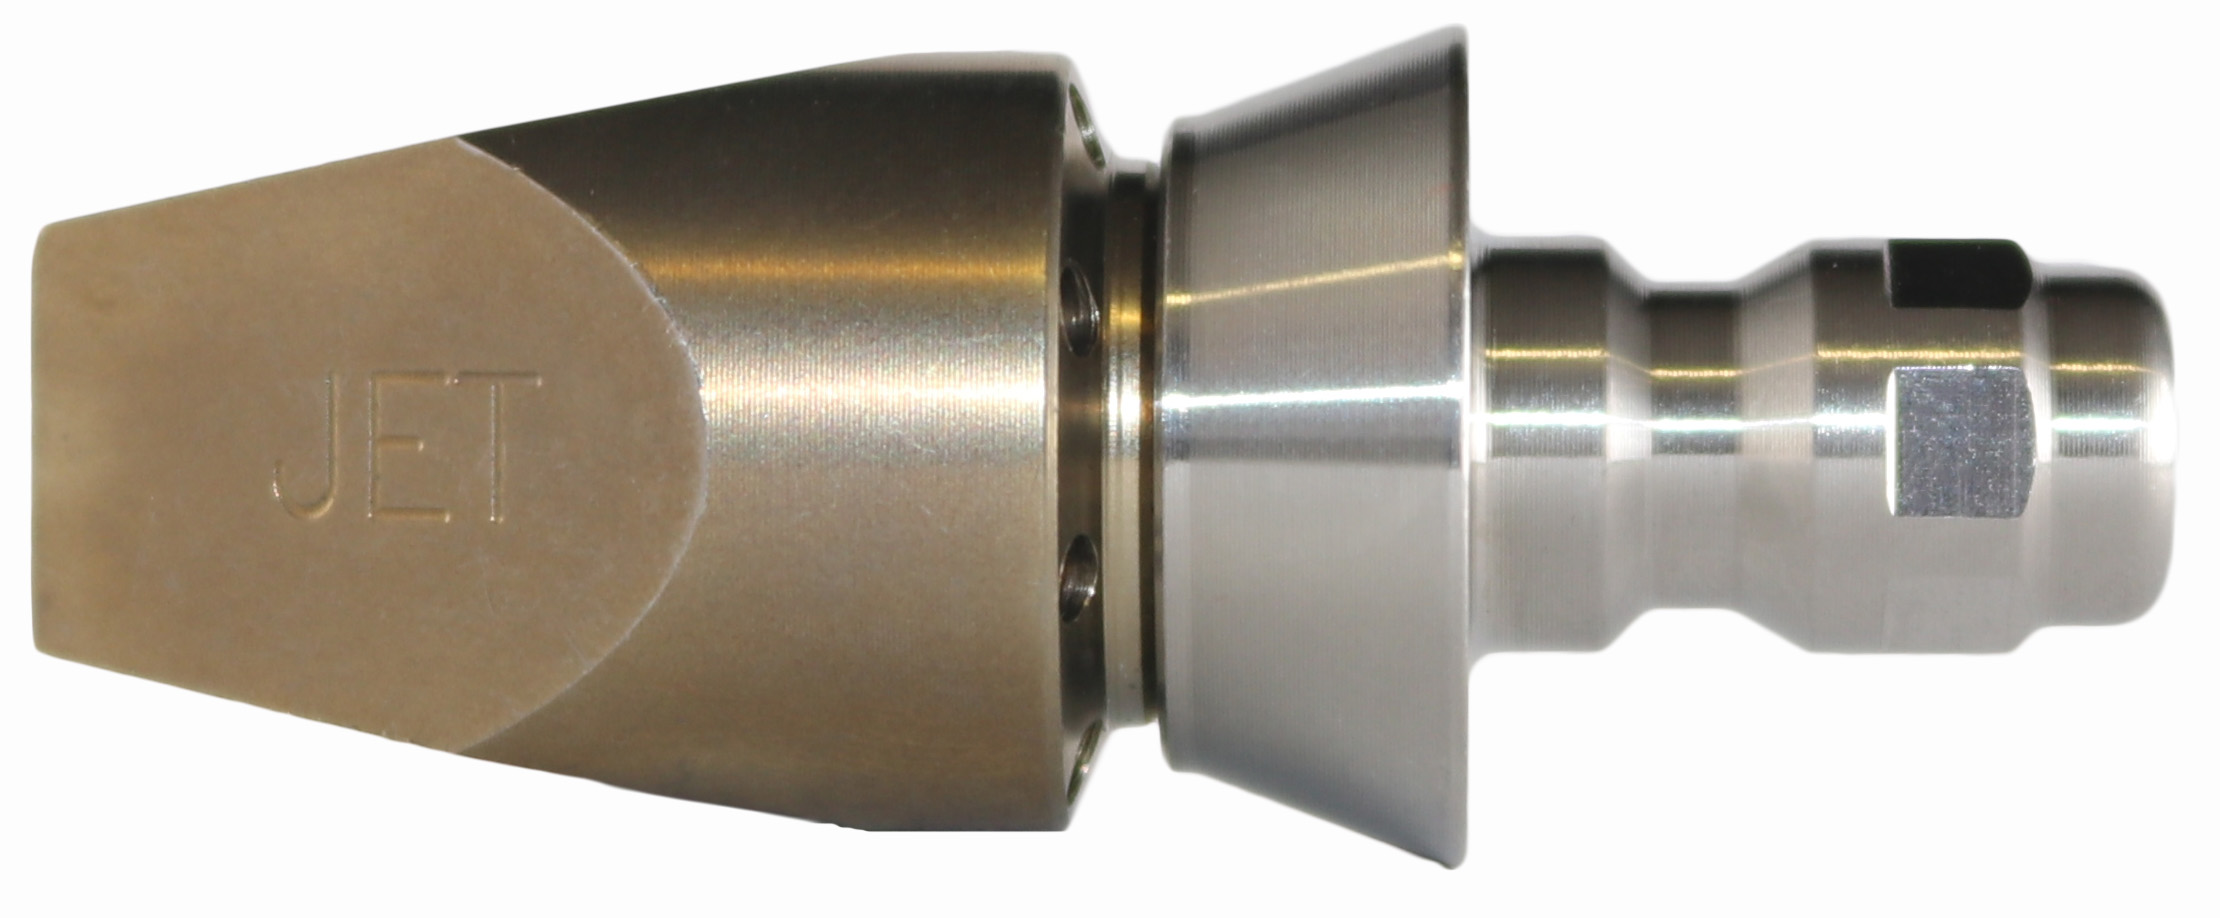 "Jetaxe Nozzle with Front Jet with SS Quick Connect Nozzle Adaptor with 1/4"" Cone"